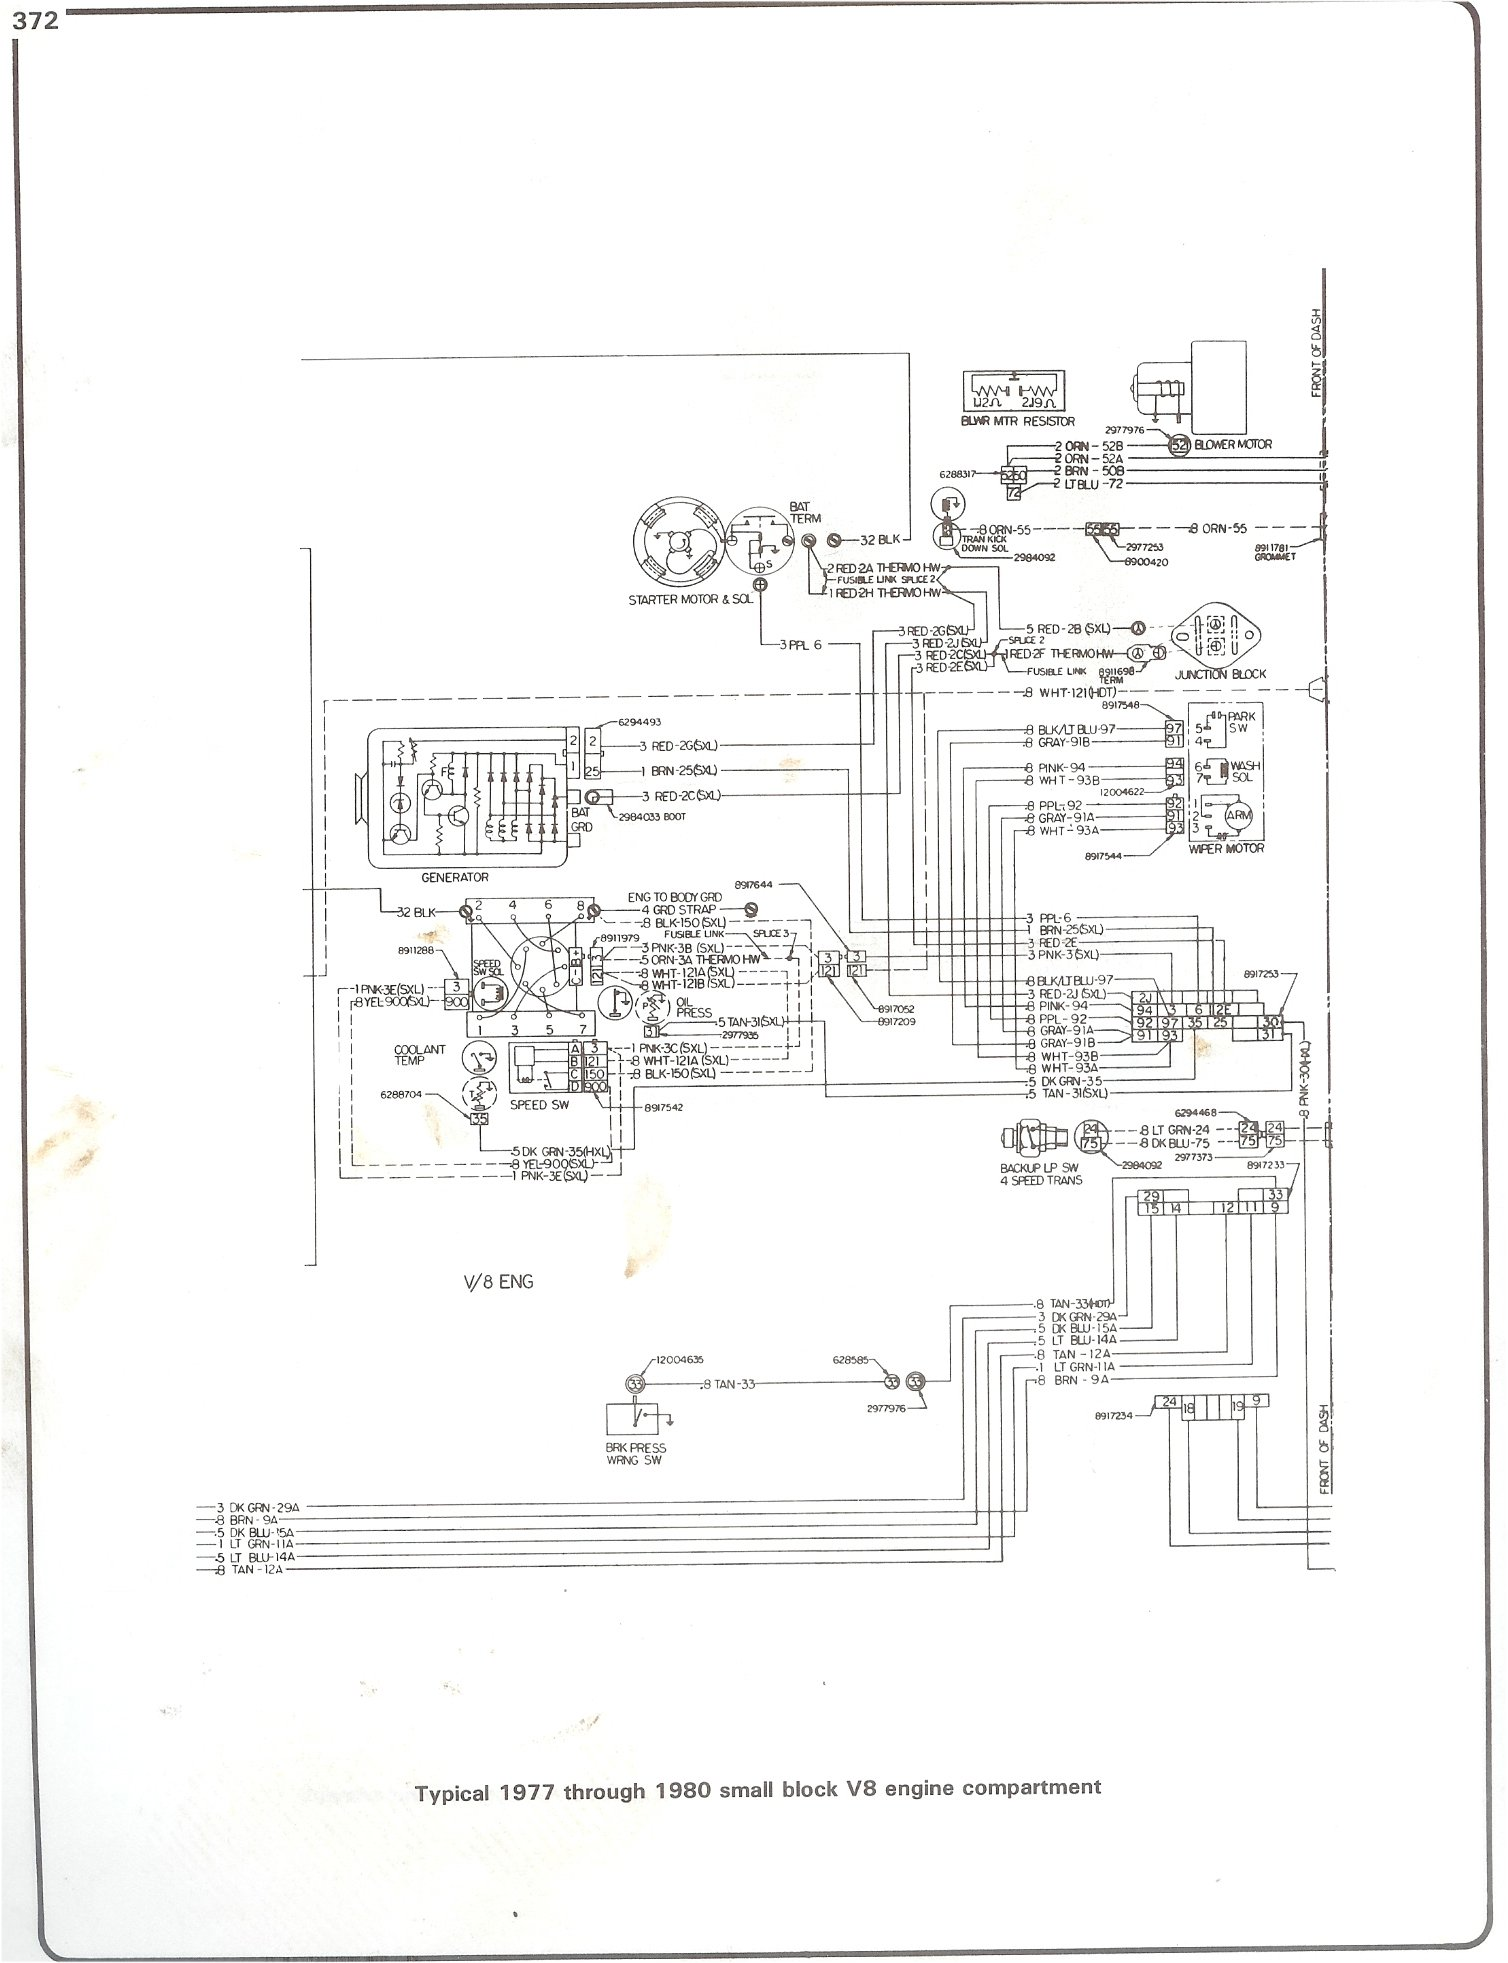 80 Chevy Pickup Wiring Diagram | Online Wiring Diagram on western joystick controller wiring diagram, fuel tank sending unit wiring diagram, 1981 chevy truck speedometer, 1985 chevy truck wiring diagram, 1981 chevy truck fan belt, 1981 chevy truck tires, 1981 chevy truck door, 1987 chevy 1500 wiring diagram, chevy truck heater wiring diagram, chevy engine wiring diagram, chevy truck ignition diagram, 1981 chevy truck exhaust, 1978 chevy truck wiring diagram, 1980 chevy truck wiring diagram, 1979 chevy truck wiring diagram, 96 chevy truck wiring diagram, chevrolet wiring diagram, 1981 chevy truck carburetor, 1969 chevy truck wiring diagram, 85 chevy truck wiring diagram,